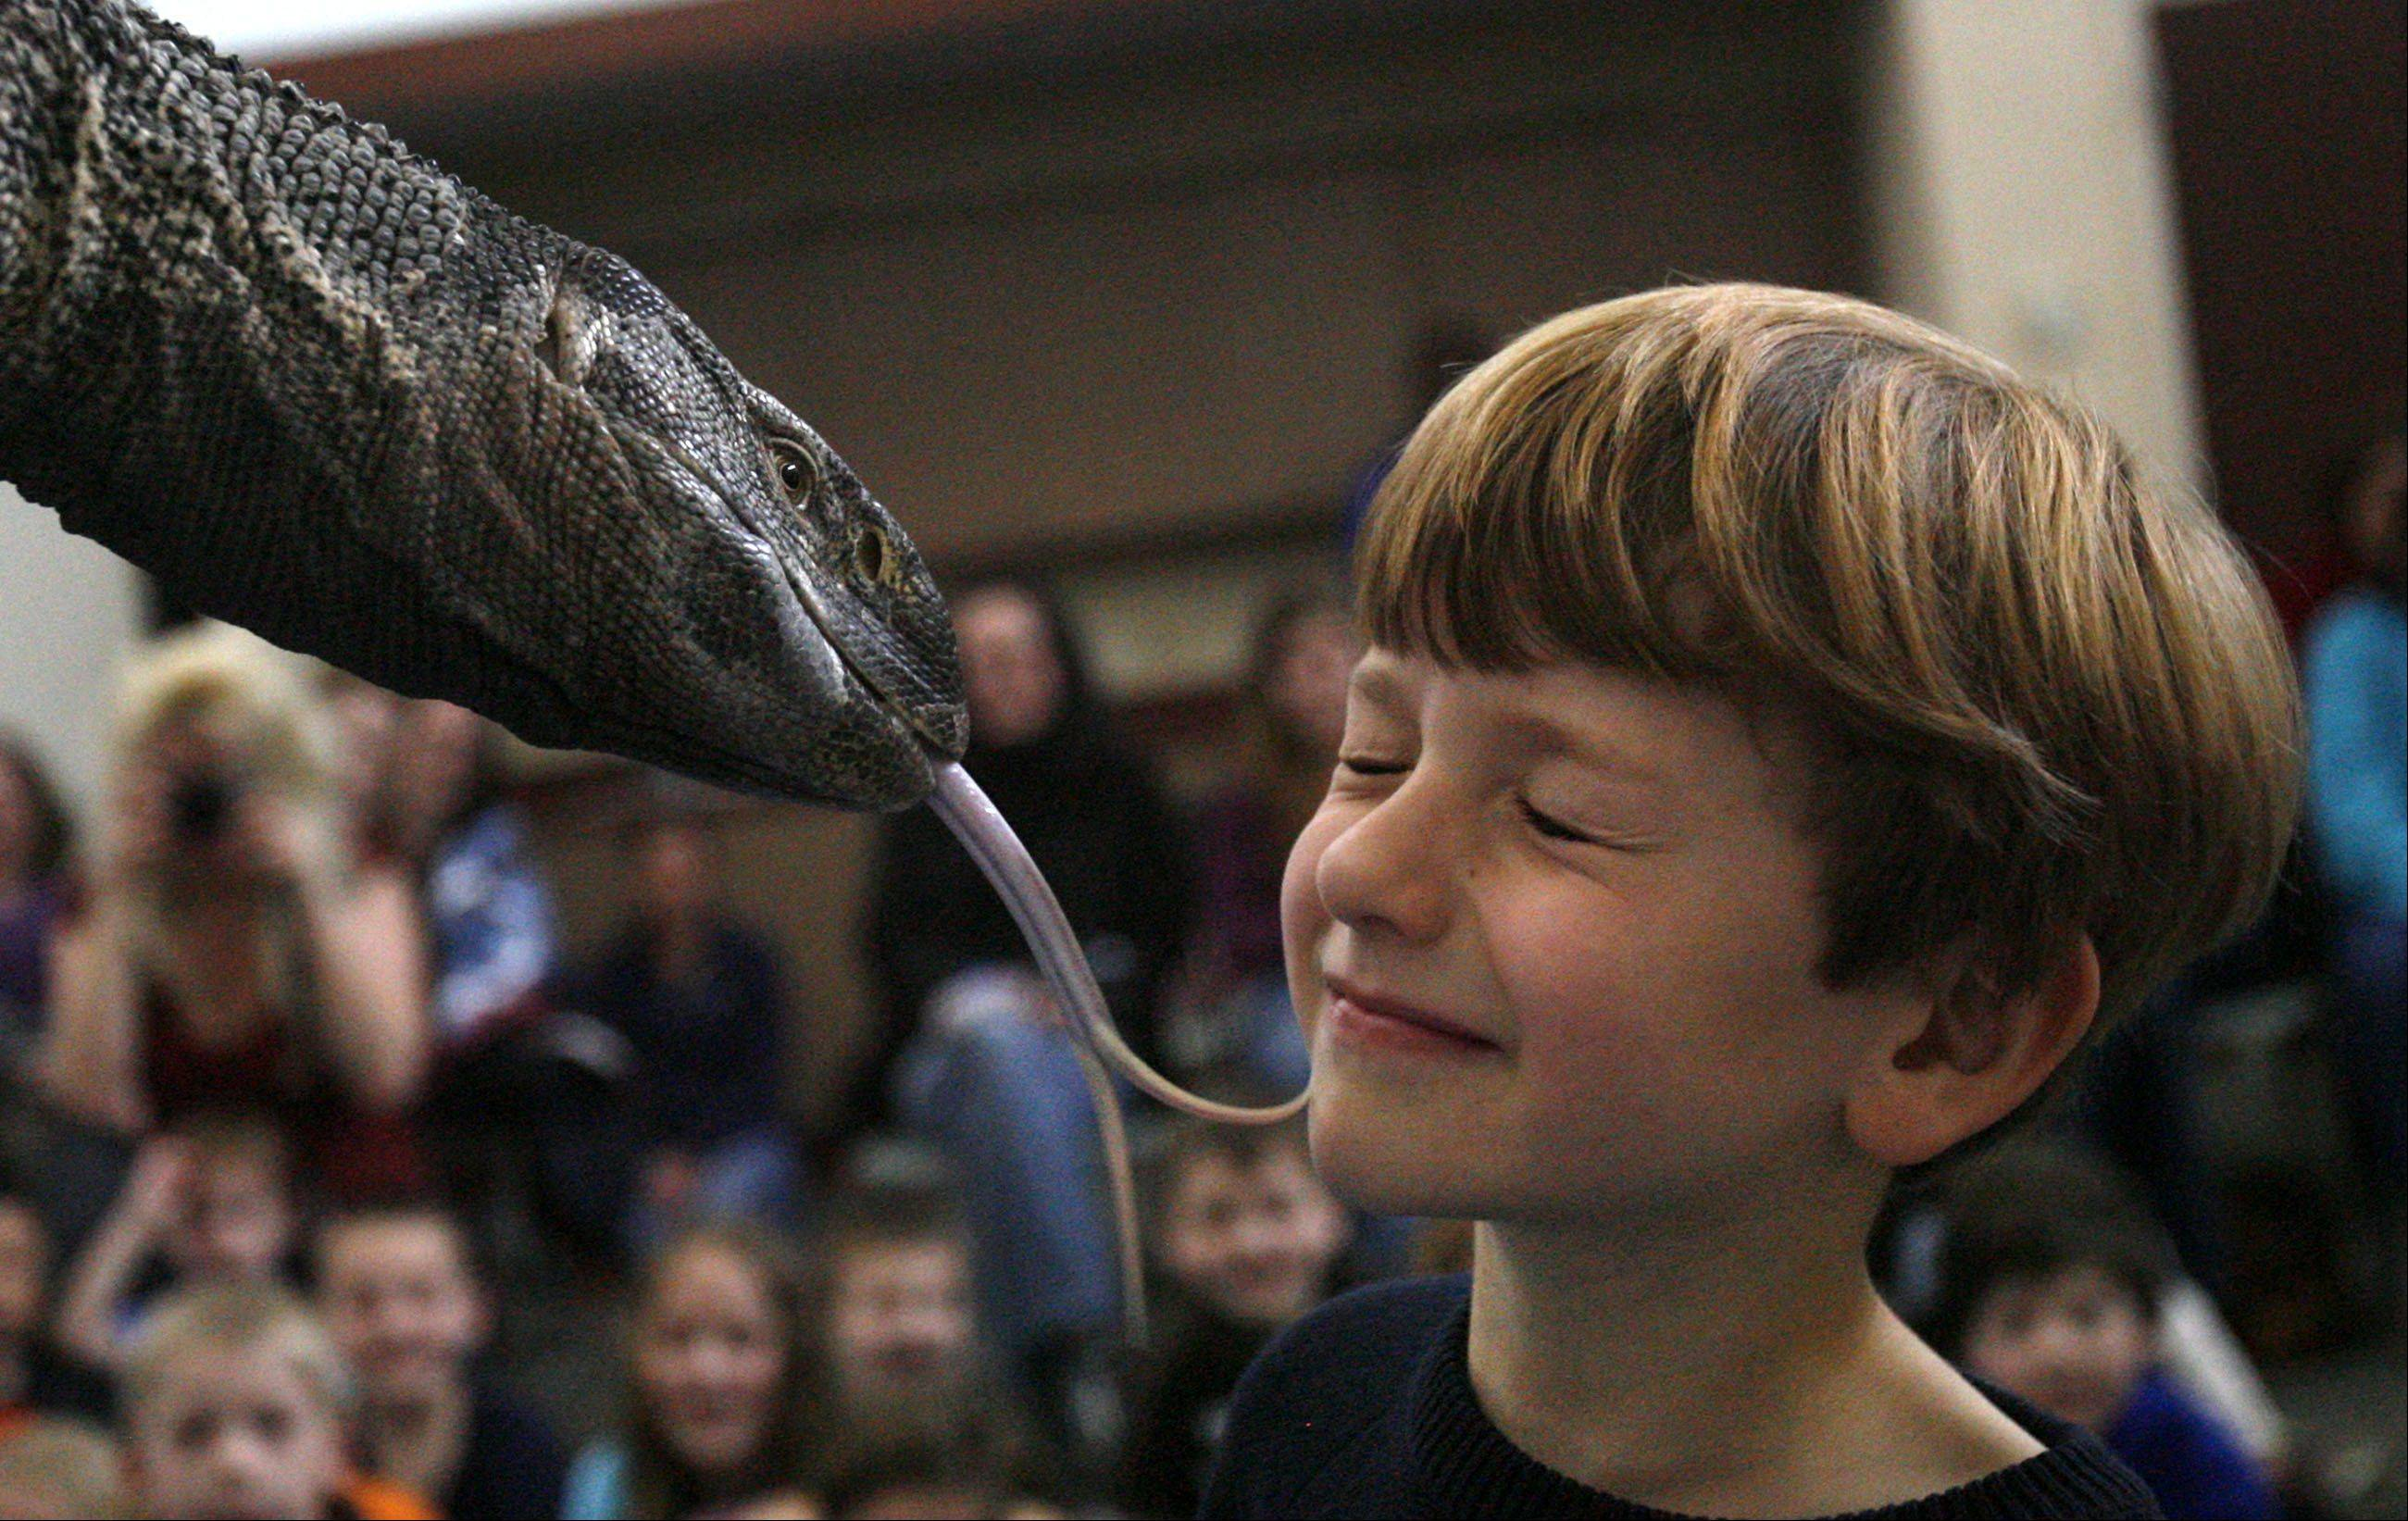 Dustin Russell, 5 of Lindenhurst, gets licked by a black throat monitor lizard being held by Jim Galeno, reptile manager with Dave DiNaso's Traveling World of Reptiles during a program at Lake Villa District Library on Friday, March 30th.